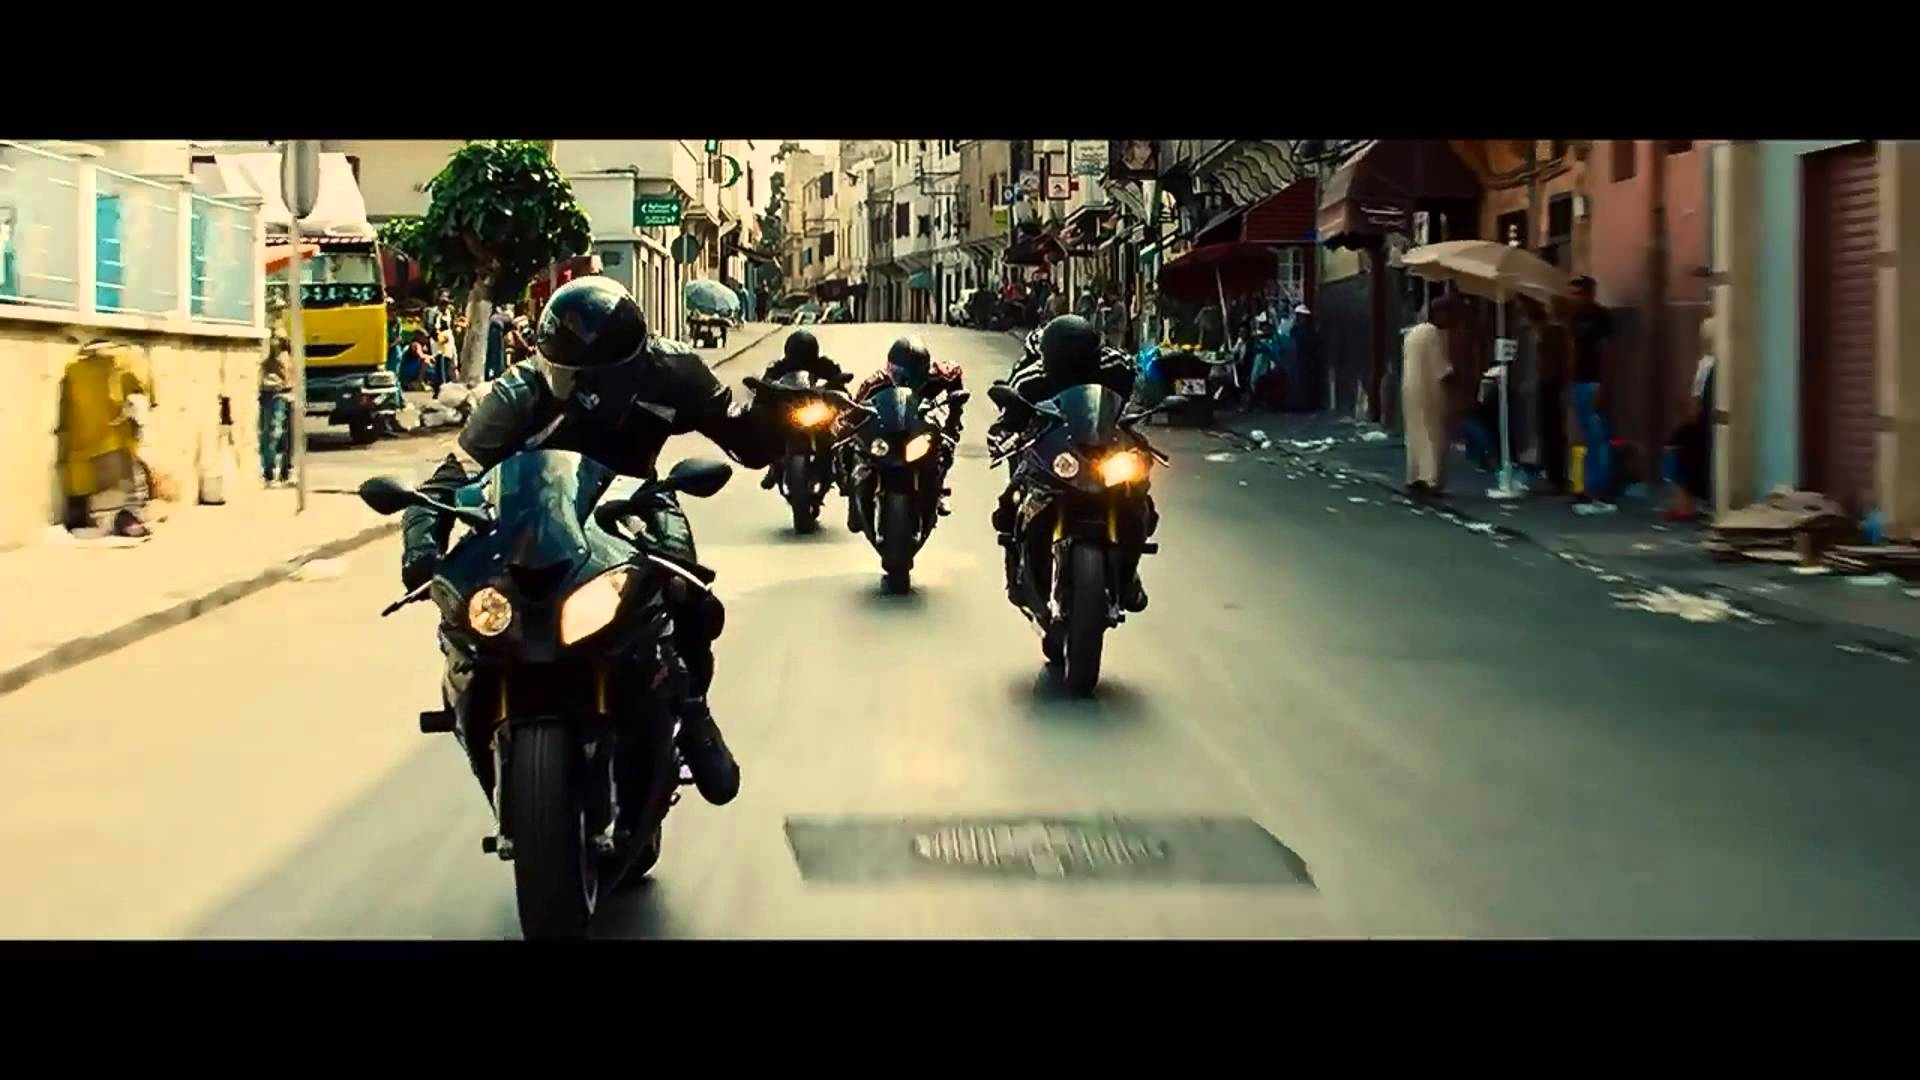 Mission_Impossible_5_Poursuite_Moto.jpg